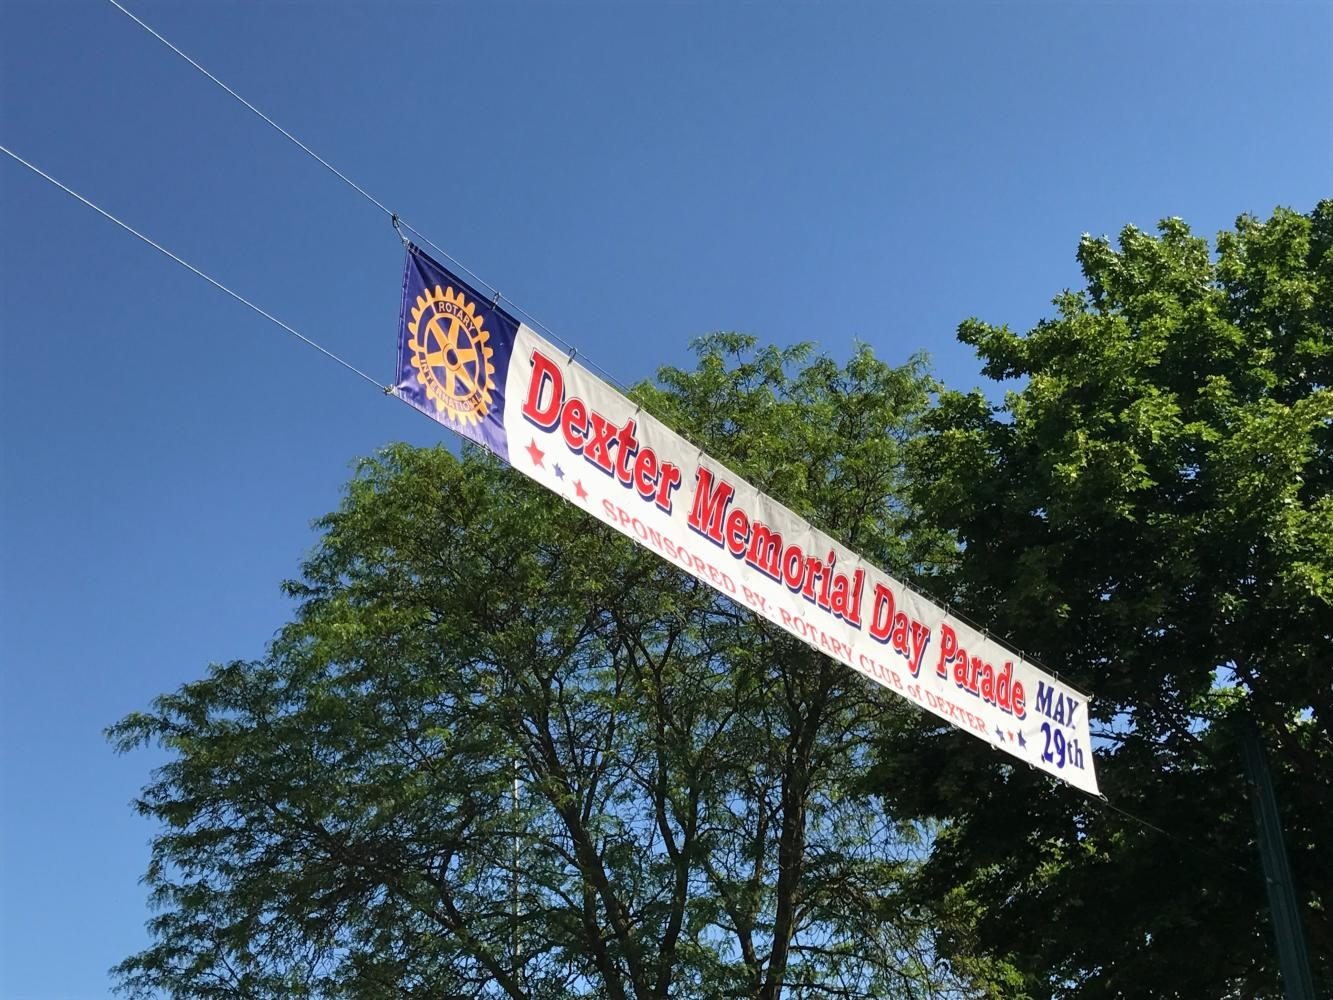 The welcoming banner on Baker Road the front of the Dexter Memorial Day Parade.